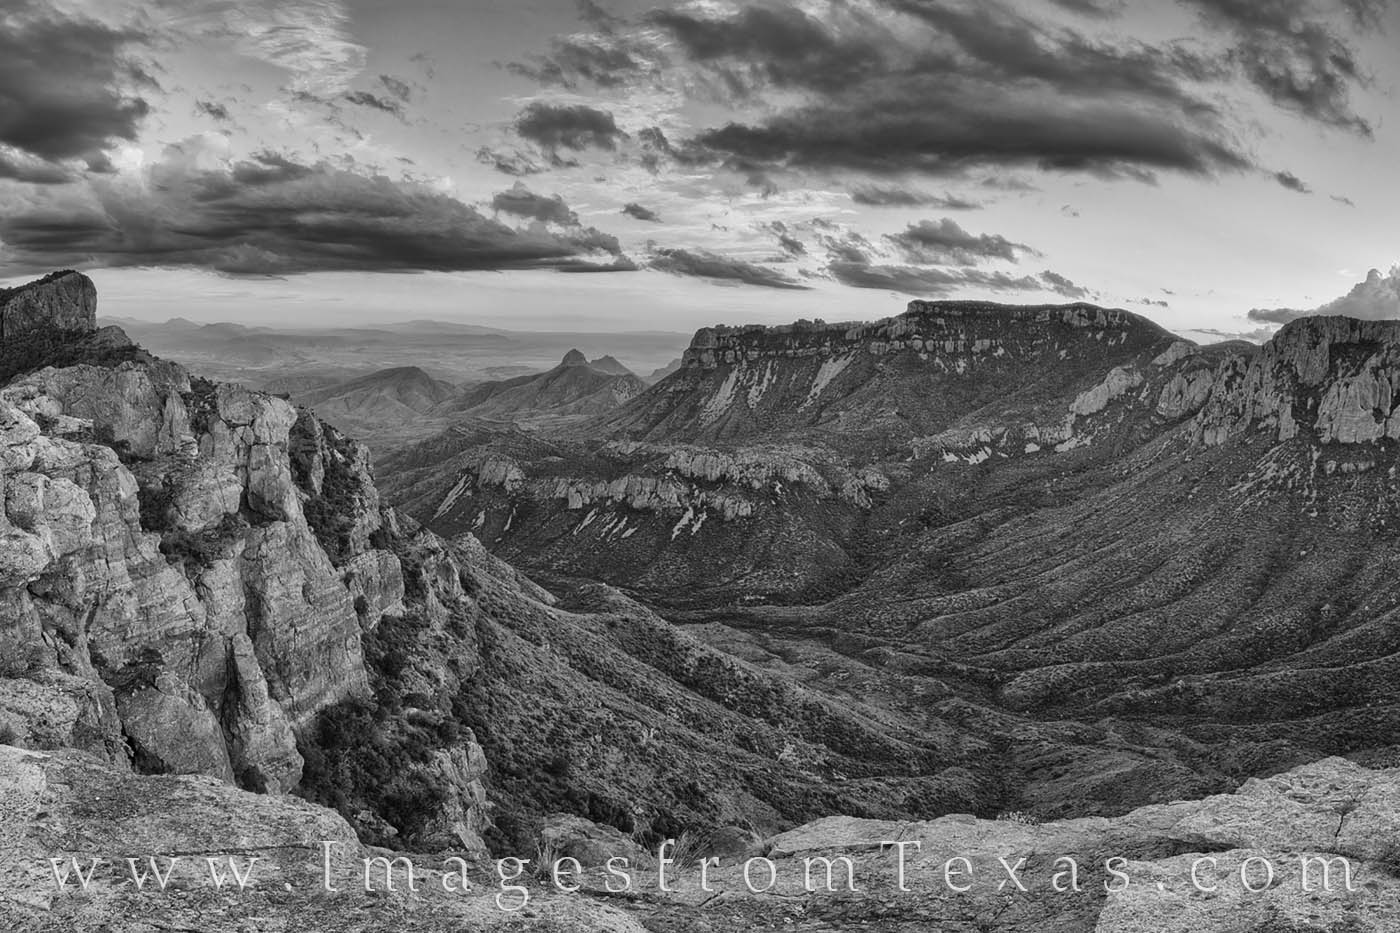 lost mine trail, big bend national park, juniper canyon, casa grande, sunset, mexico, chihuahuan desert, chisos mountains, best black and white photos, black and white prints where can I find black an, photo